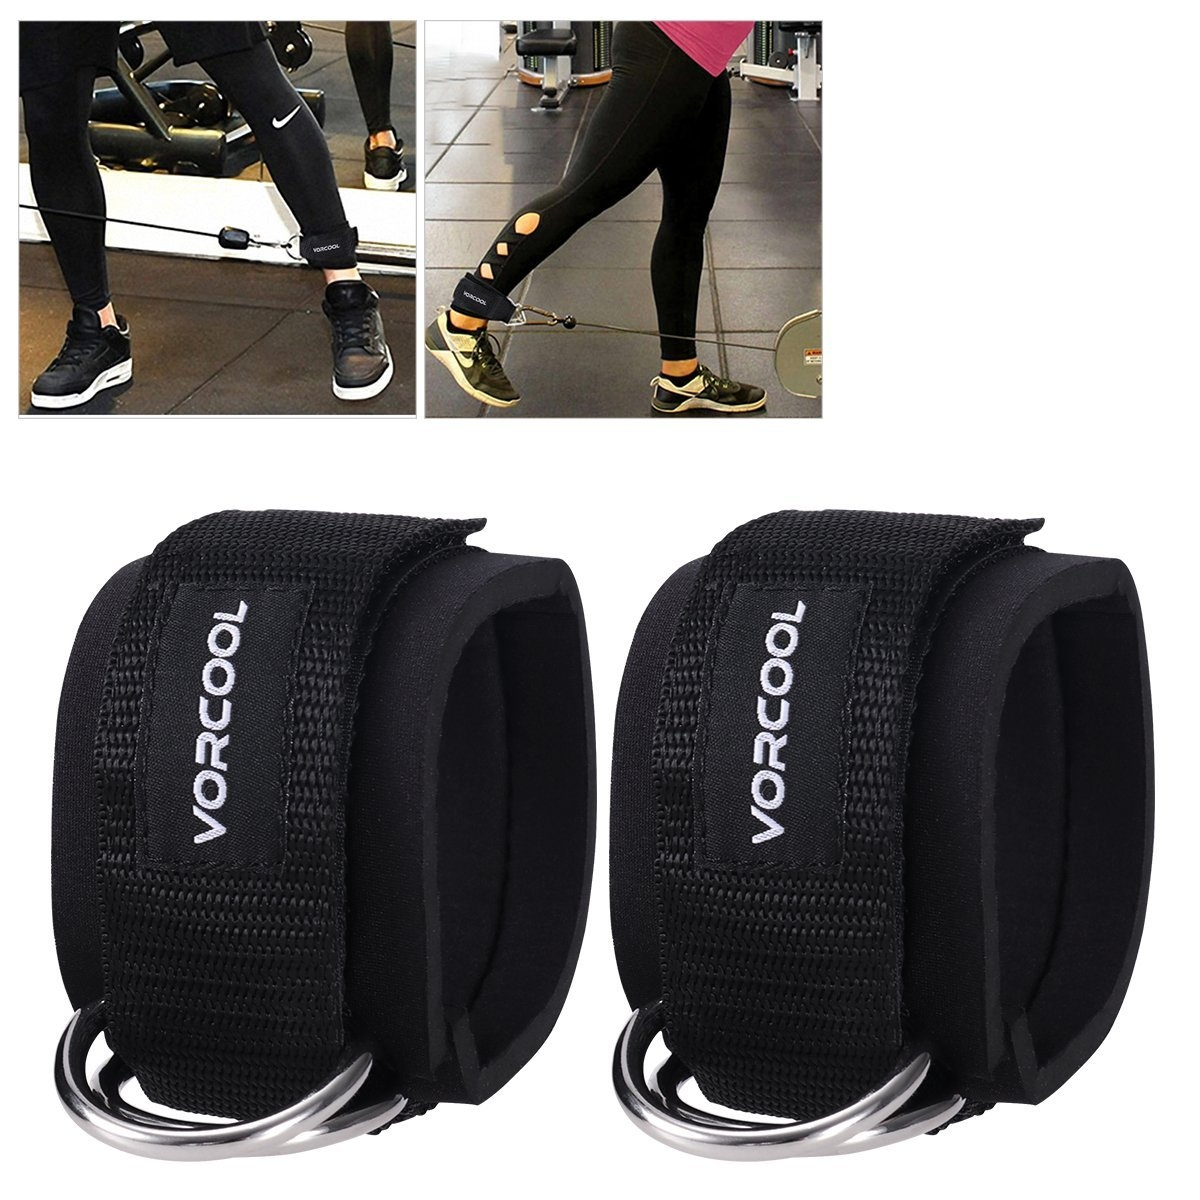 4f7a704a6fe6 VORCOOL 2PCS Ankle Straps for Cable Machines Weightlifting Gym Workout  Fitness Double D-Ring Neoprene Padded Ankle Cuffs for Legs, Abs and Glute  ...